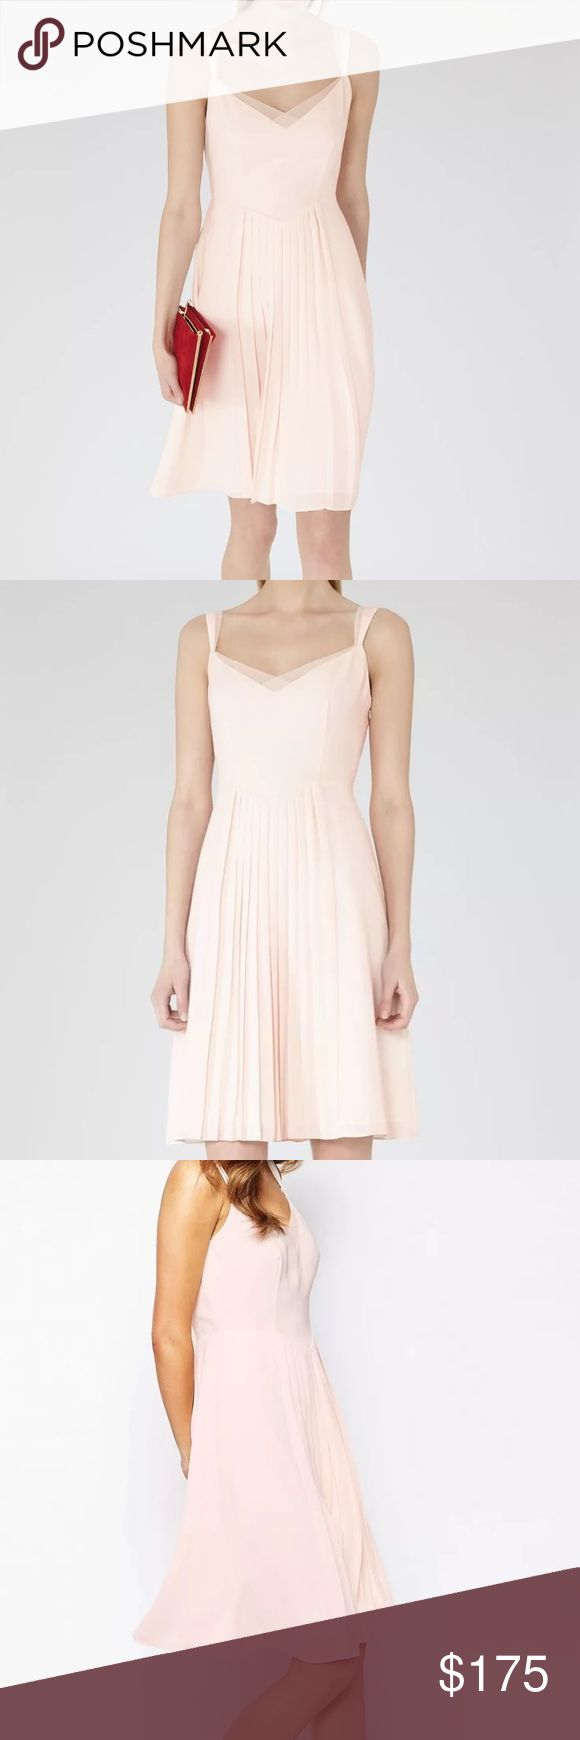 REISS cream pink tulle dress v neck mini pleated New without original tags, has tj maxx tag instead $370 Reiss Lychee Light Pink / Cream sleeveless Pleated dress in women's size 12. This is a gorgeous dress, and soft and lightweight. Has a hidden zipper. Smoke and pet free home. Back has a deep v with a sheer gossamer trip. Dress is lined as well. Such an elegant and classic style, Kate Middleton frequently wears Reiss dresses! No trades Reiss Dresses Mini